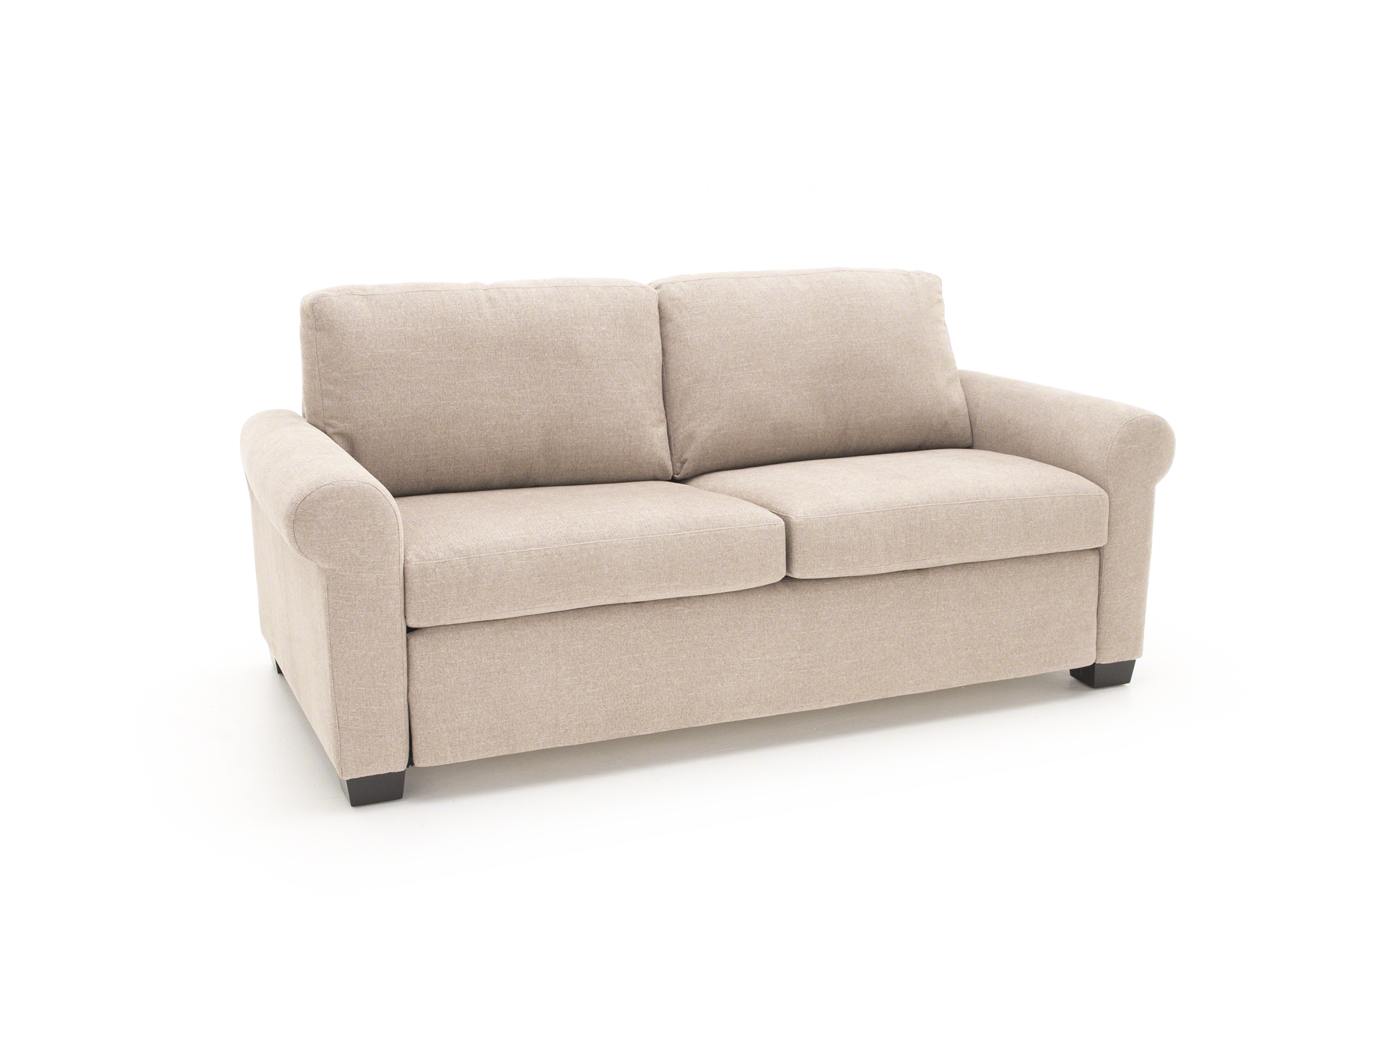 chair product steinhafels sofa details sleeper twin preston a merchandise